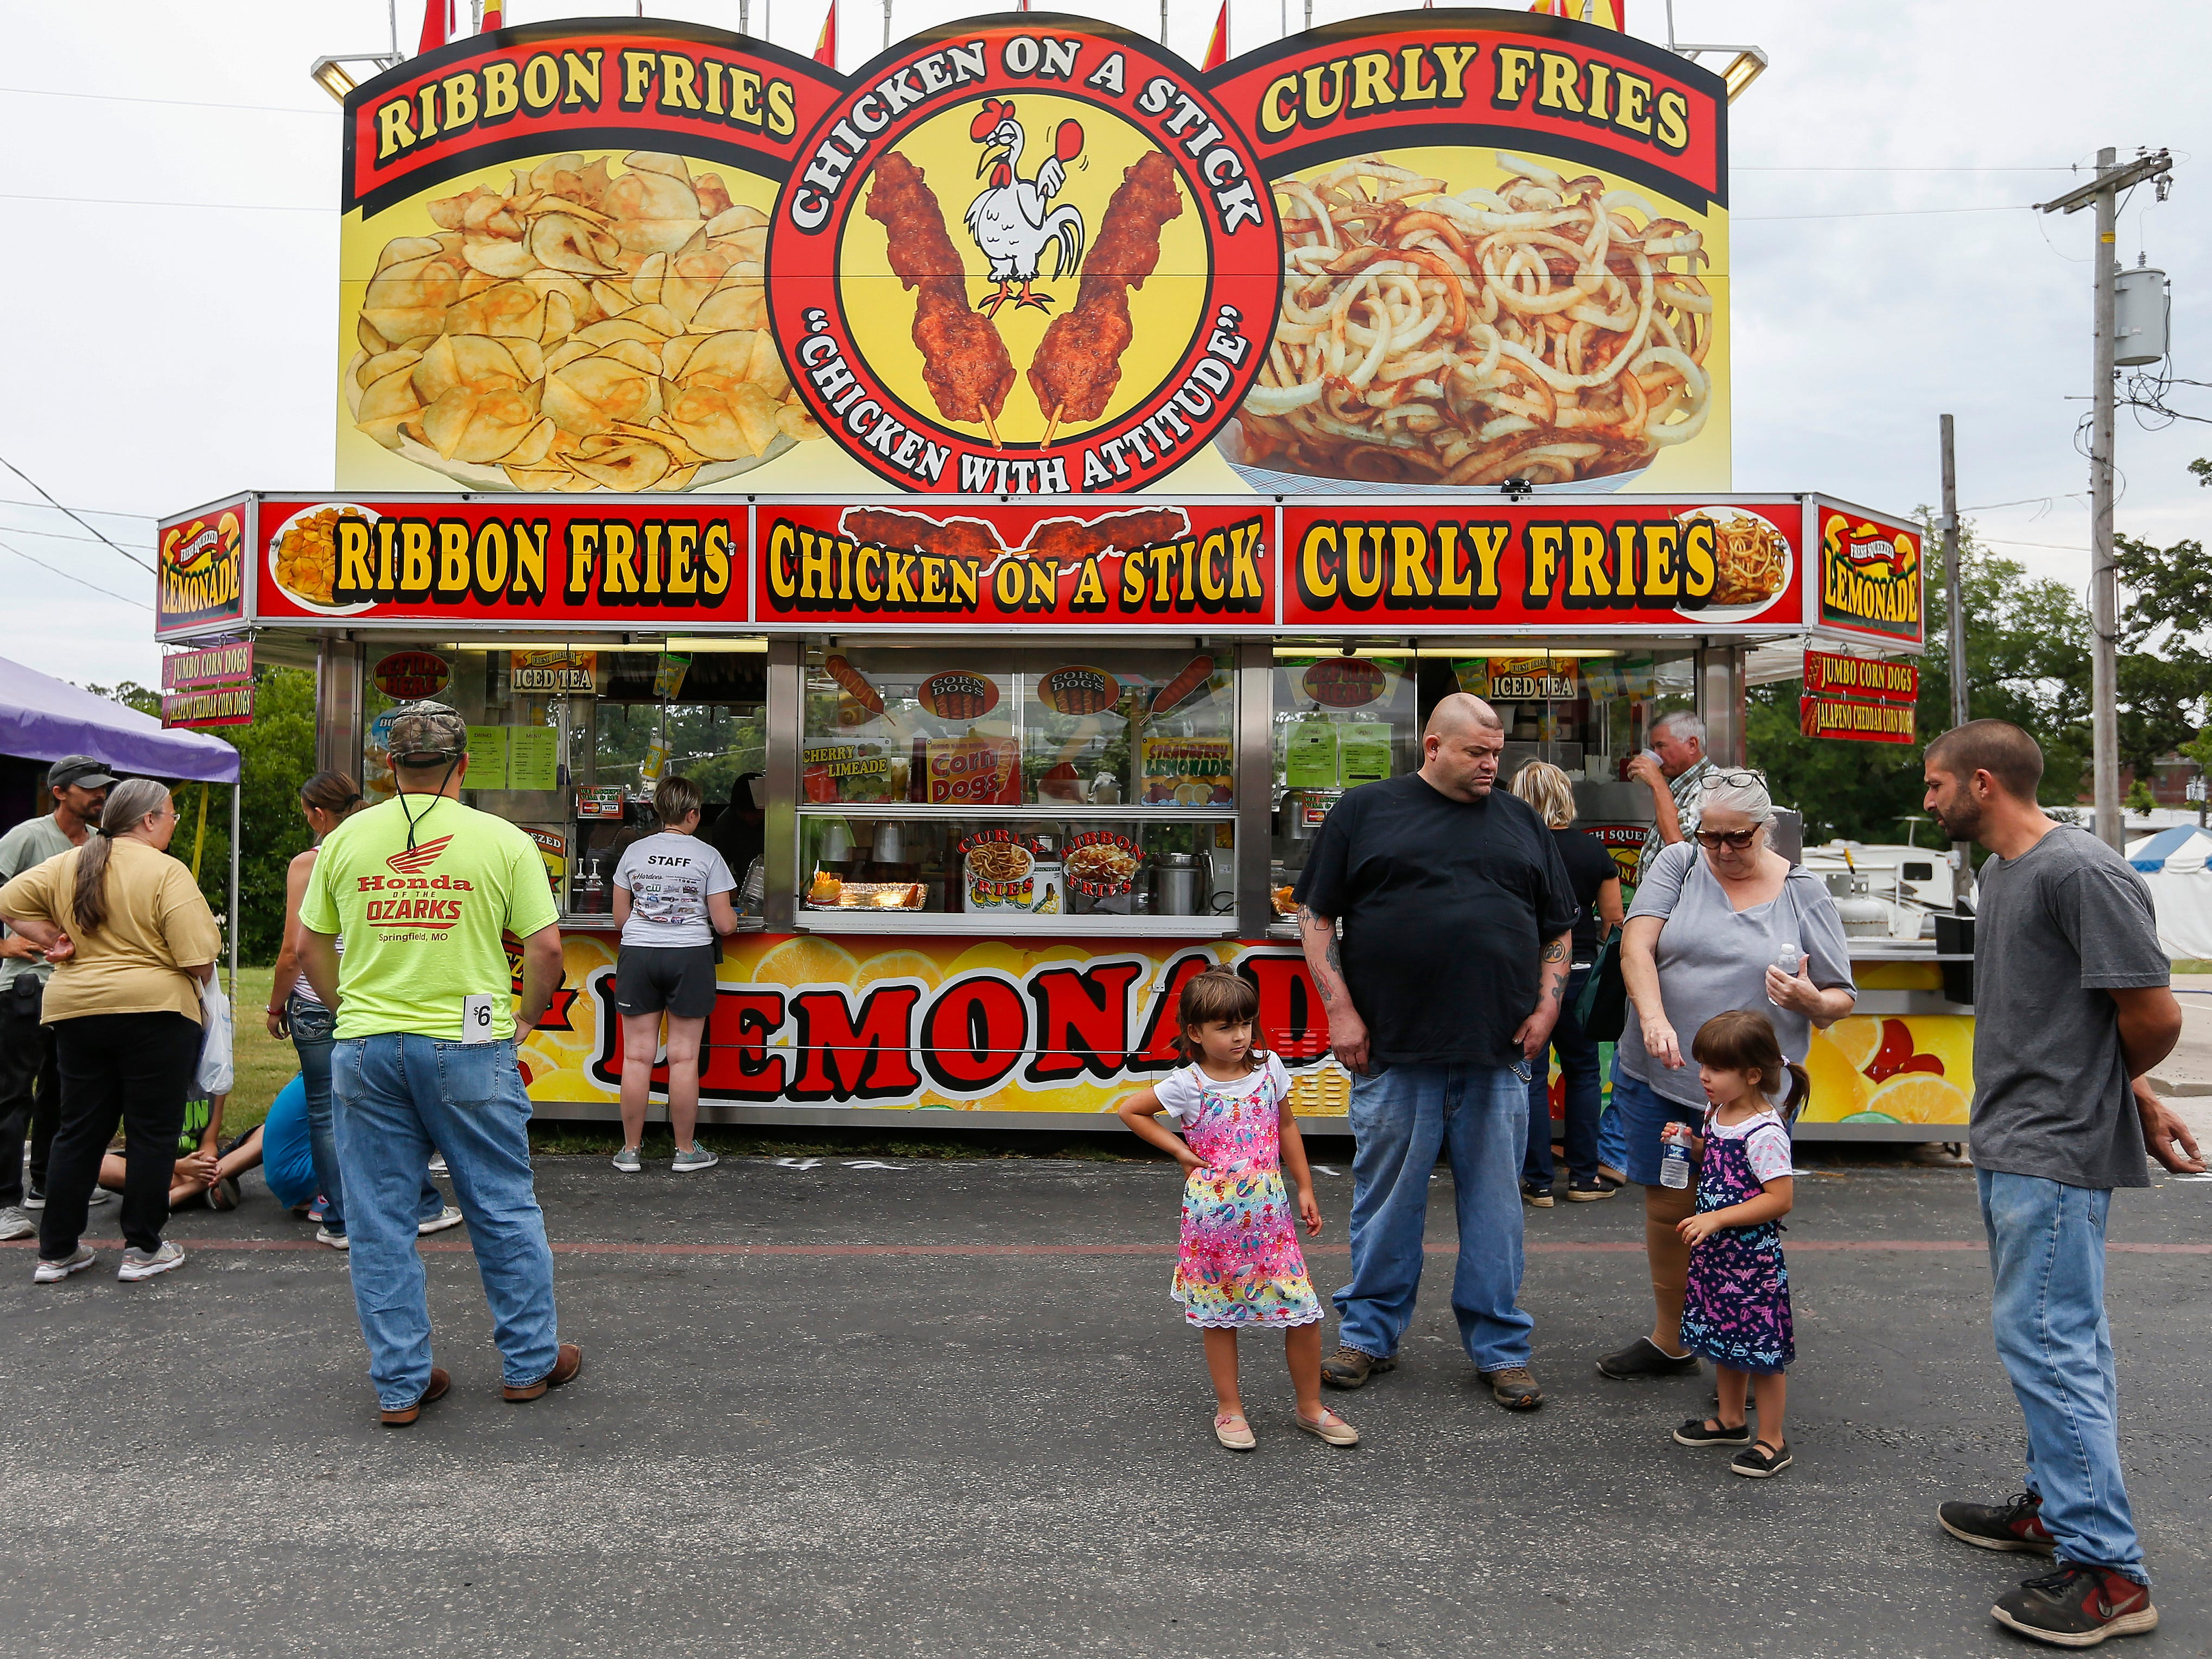 Scenes from the Ozark Empire Fair on Saturday, July 28, 2018.